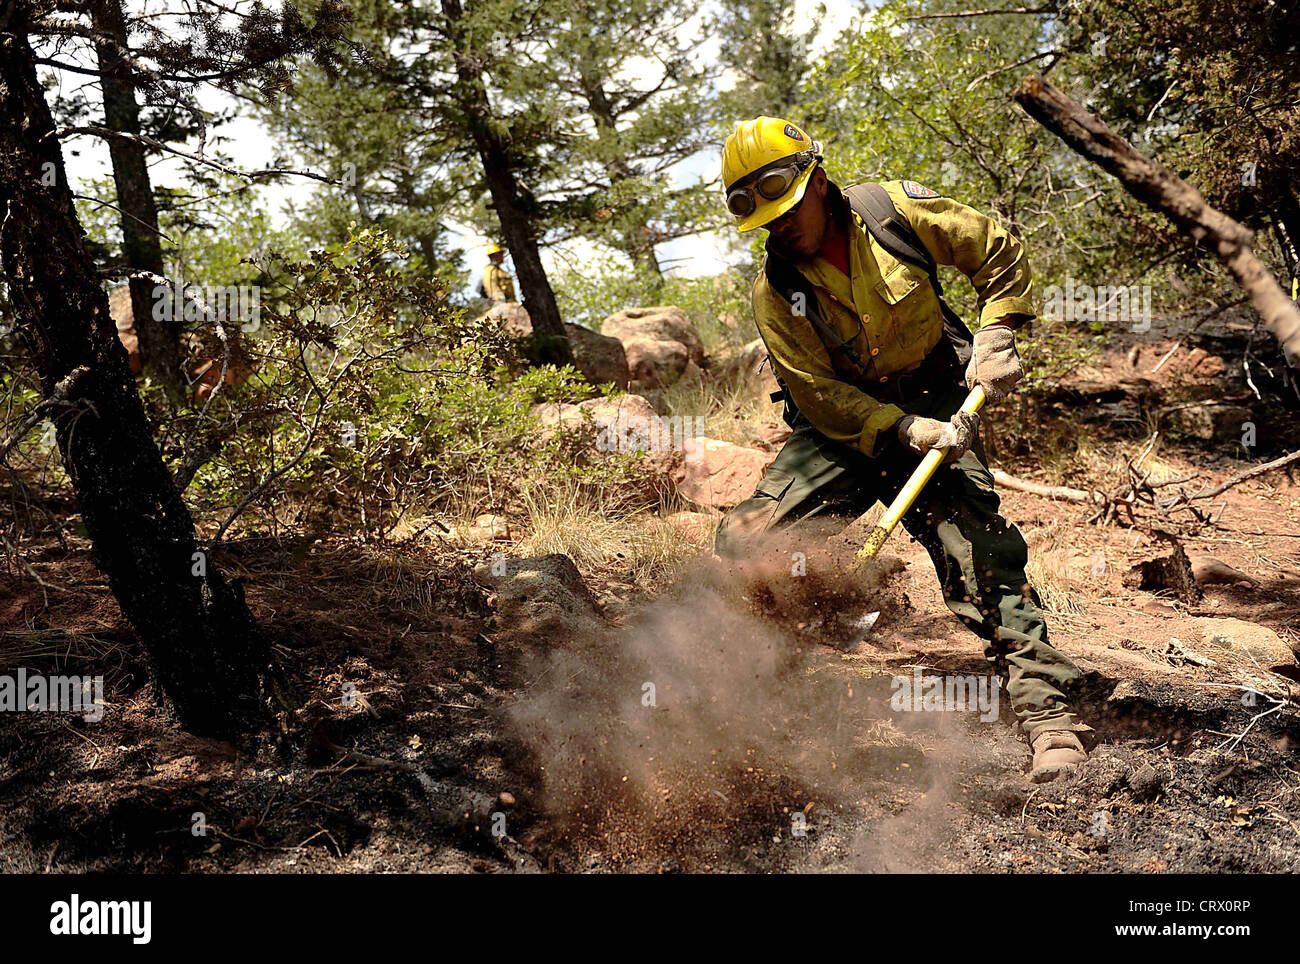 Wildfire Hot Shot fire fighter Lupe Covarrubias cuts a fire line to battle the Waldo Canyon fire on June 28, 2012 - Stock Image